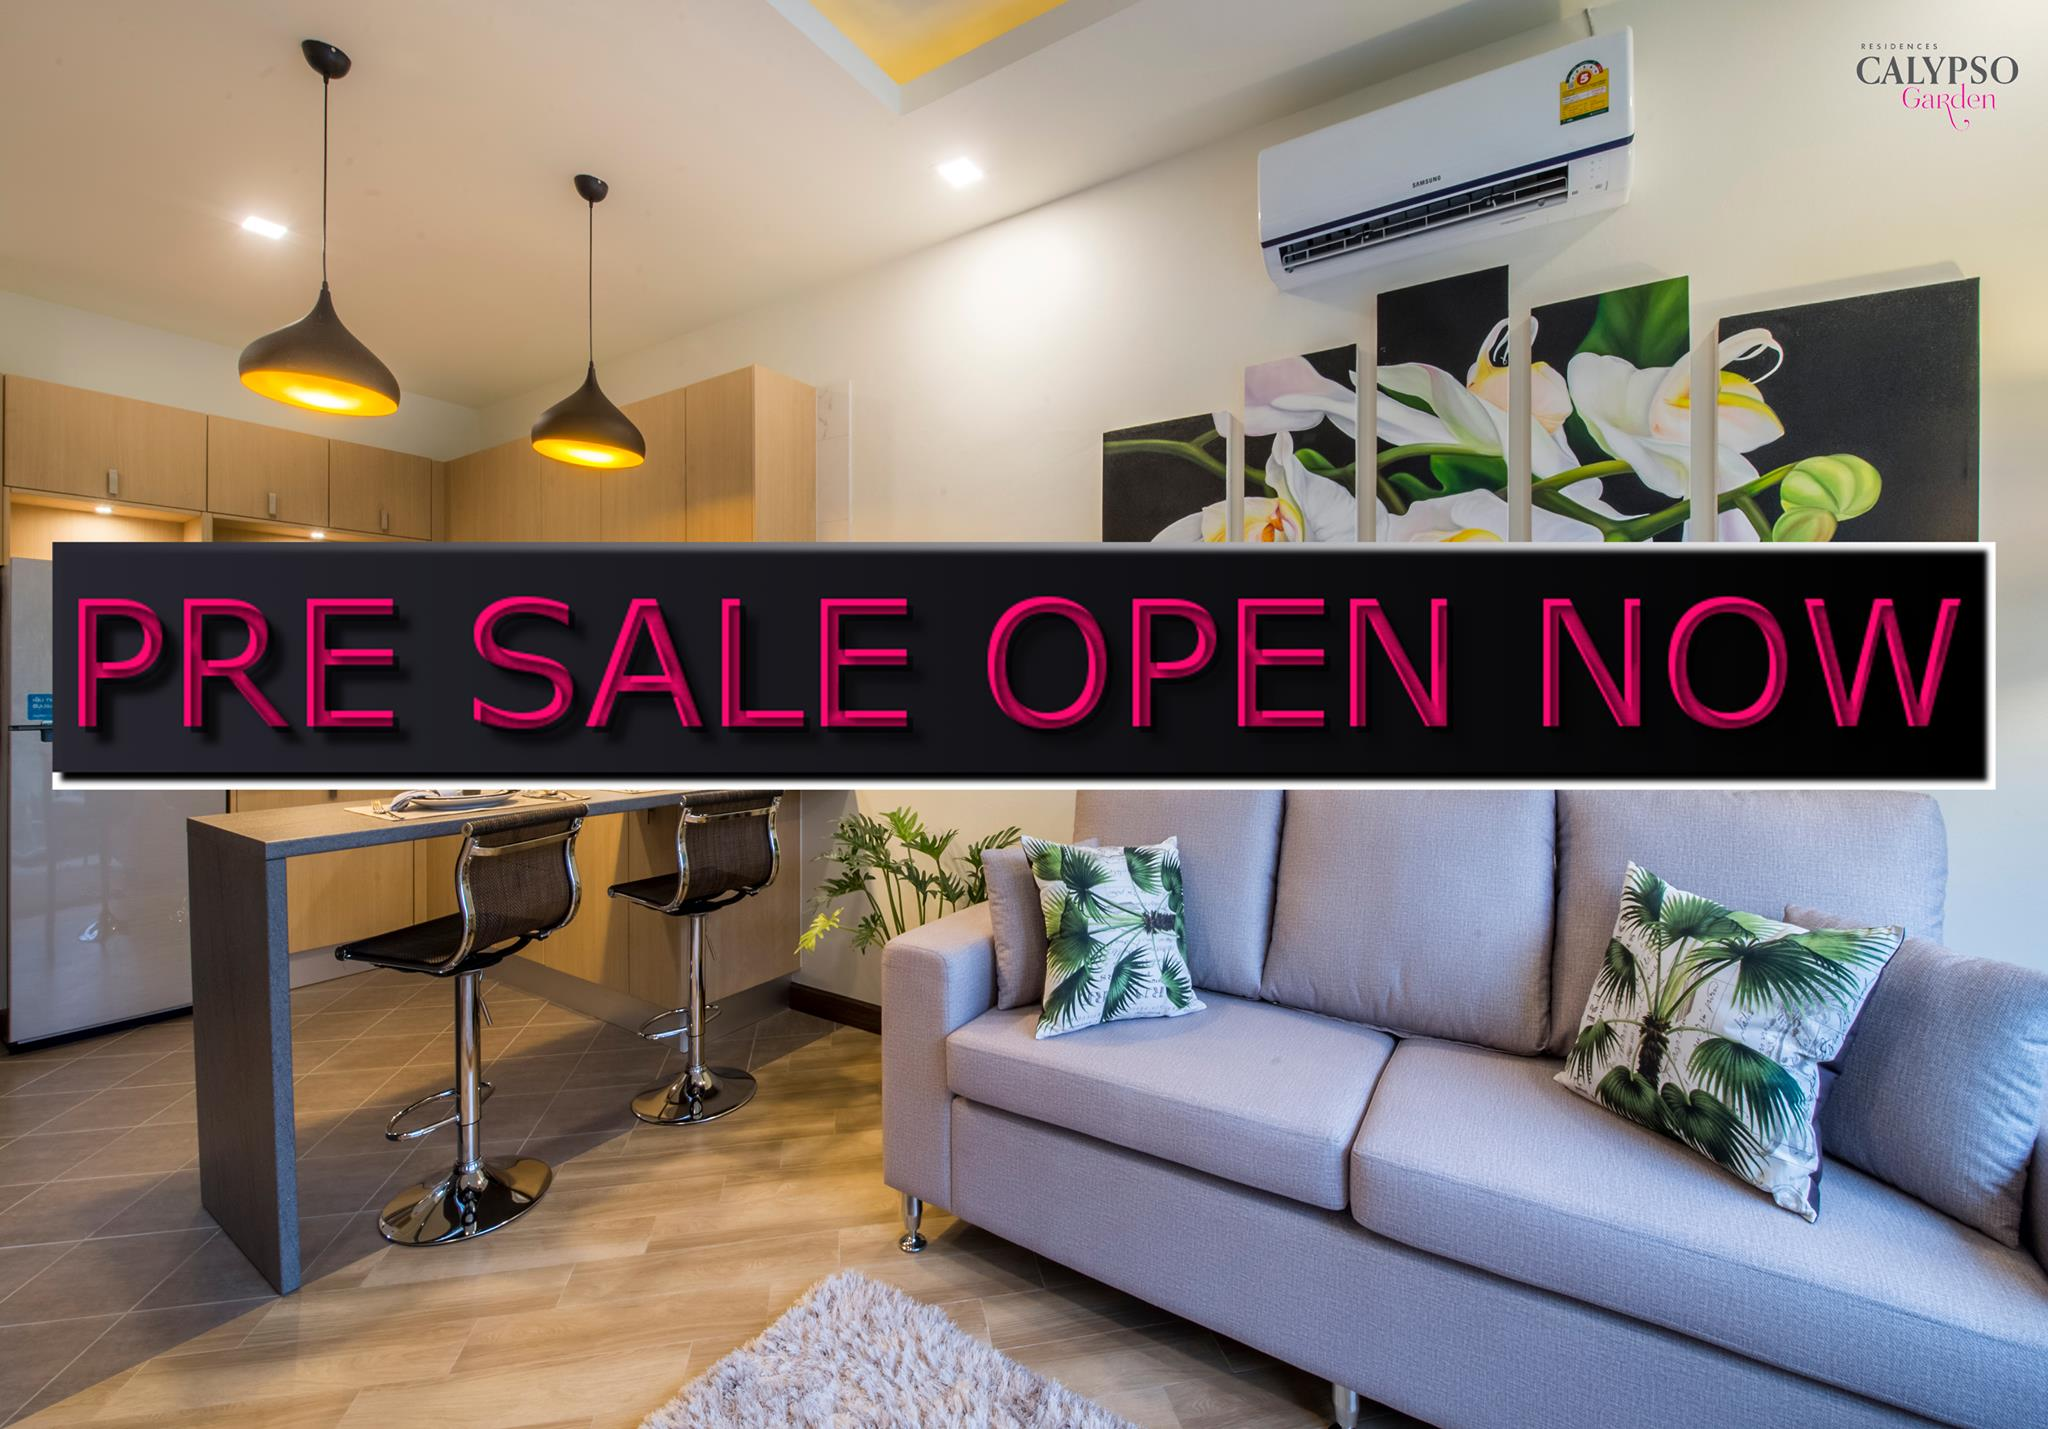 Newly Launched Condominium Project for sale Price start 3.2 Million